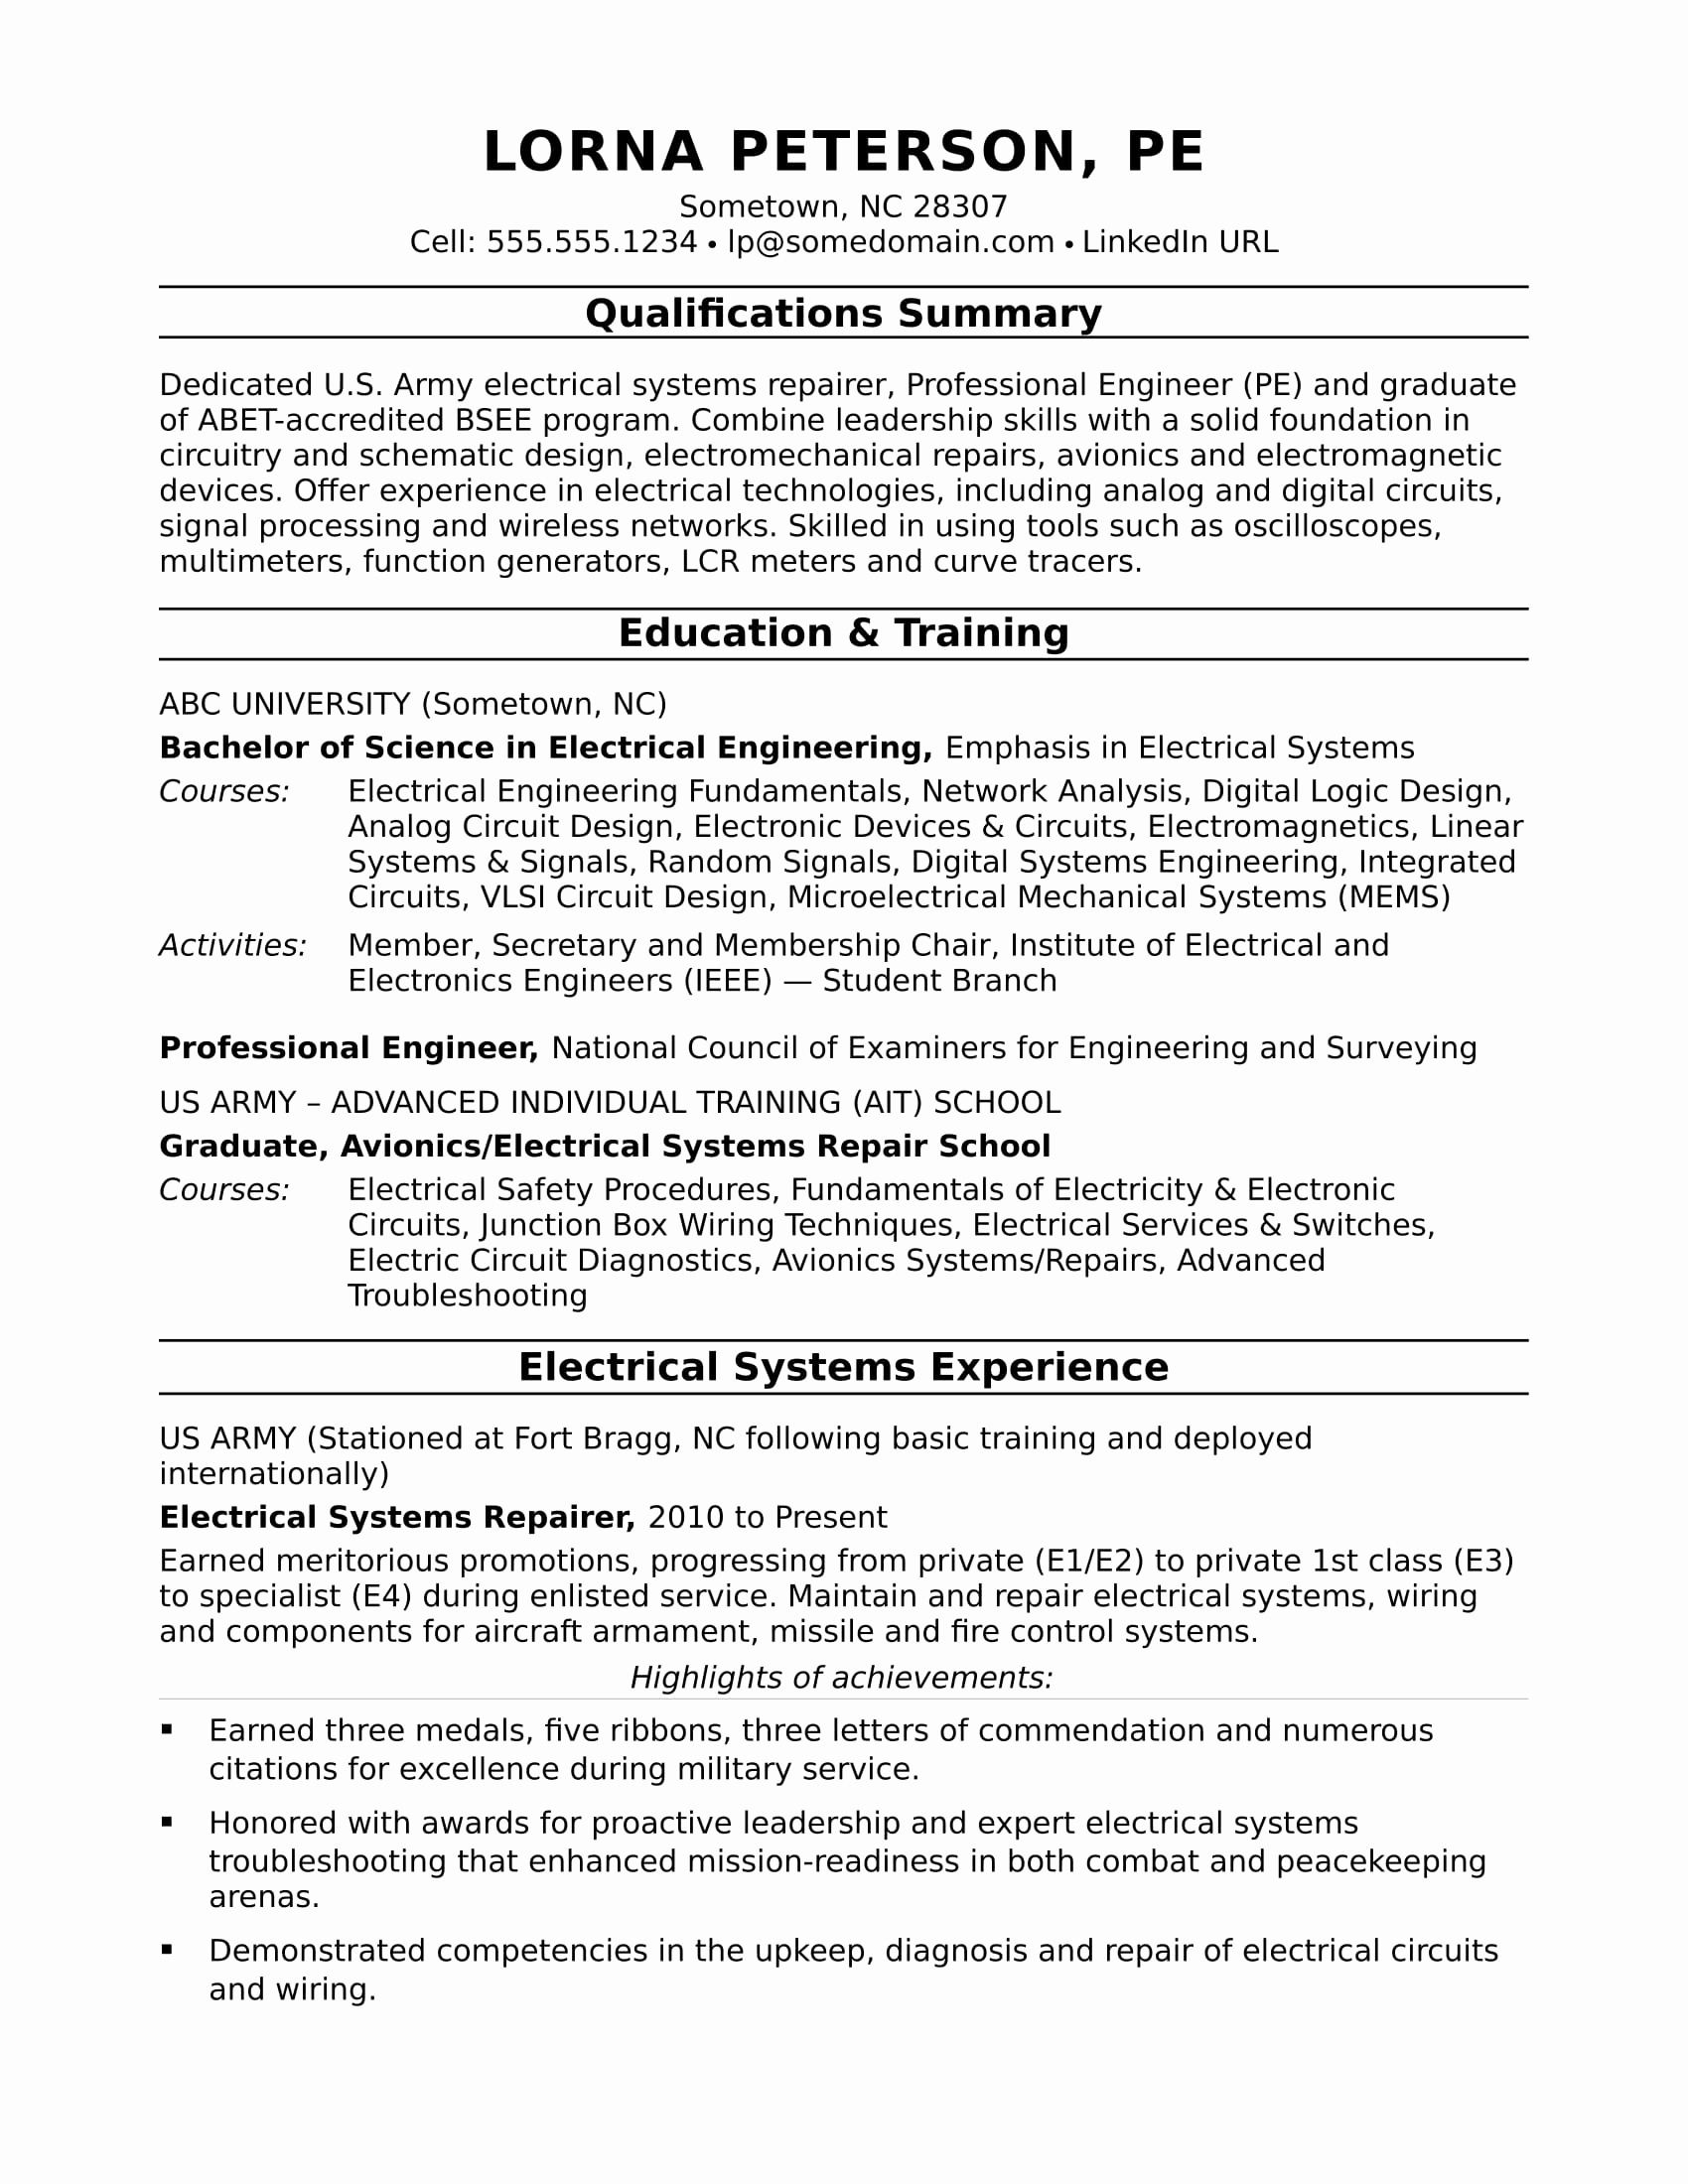 Electrical Engineer Resume Sample Inspirational Sample Resume for A Midlevel Electrical Engineer